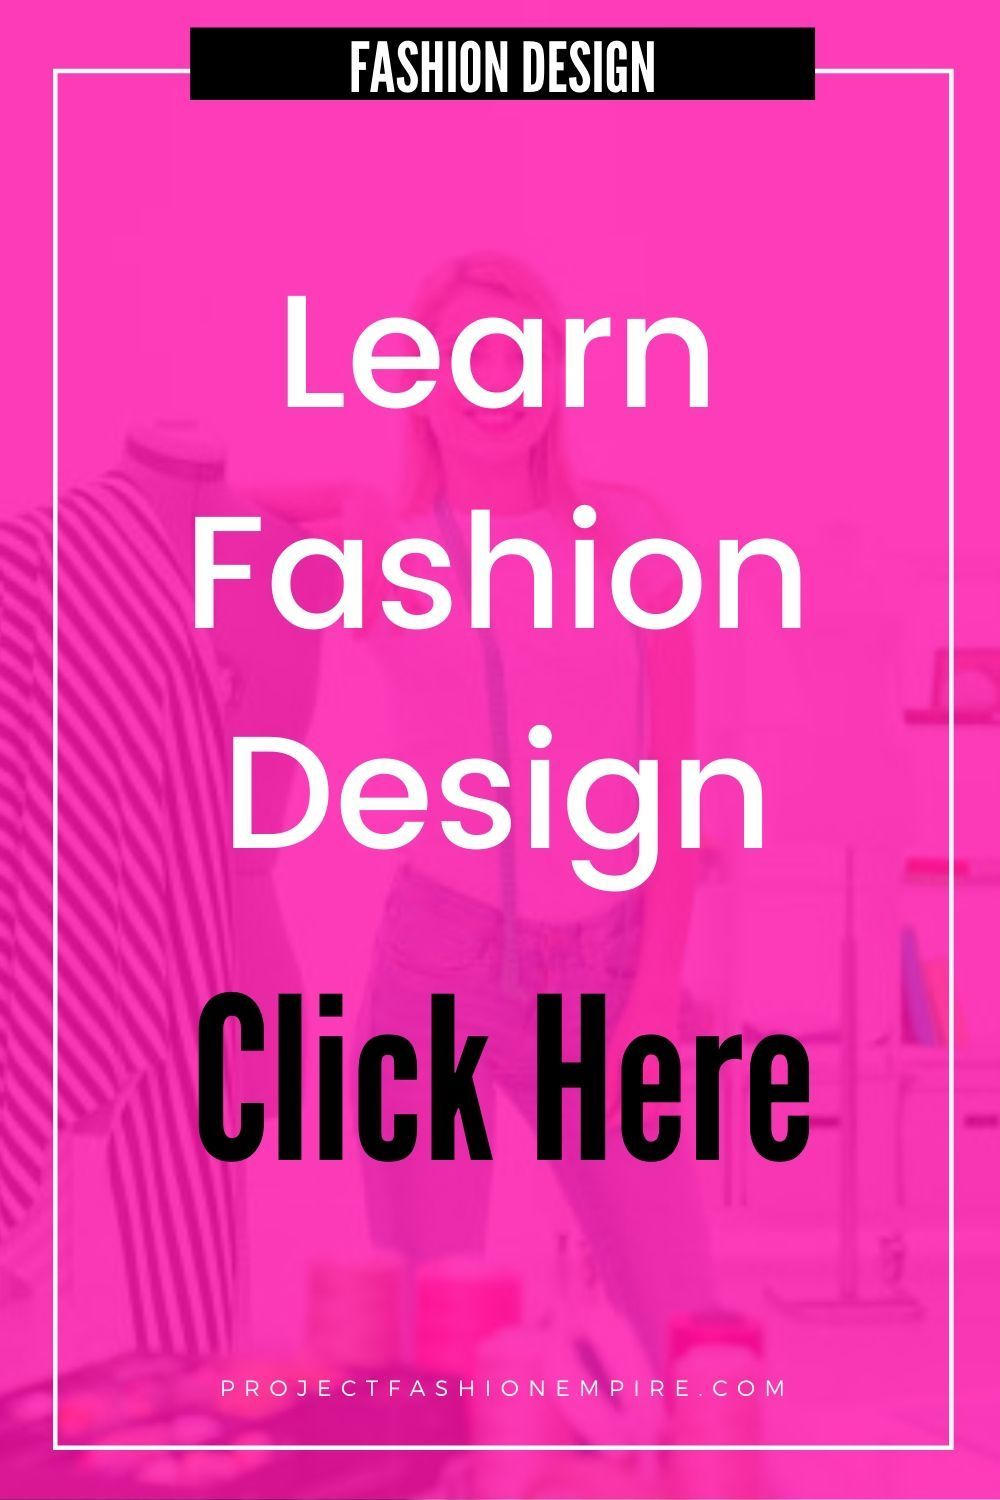 Fashion Design Masterclass In 2020 Fashion Design Collection Fashion Inspiration Design Fashion Design